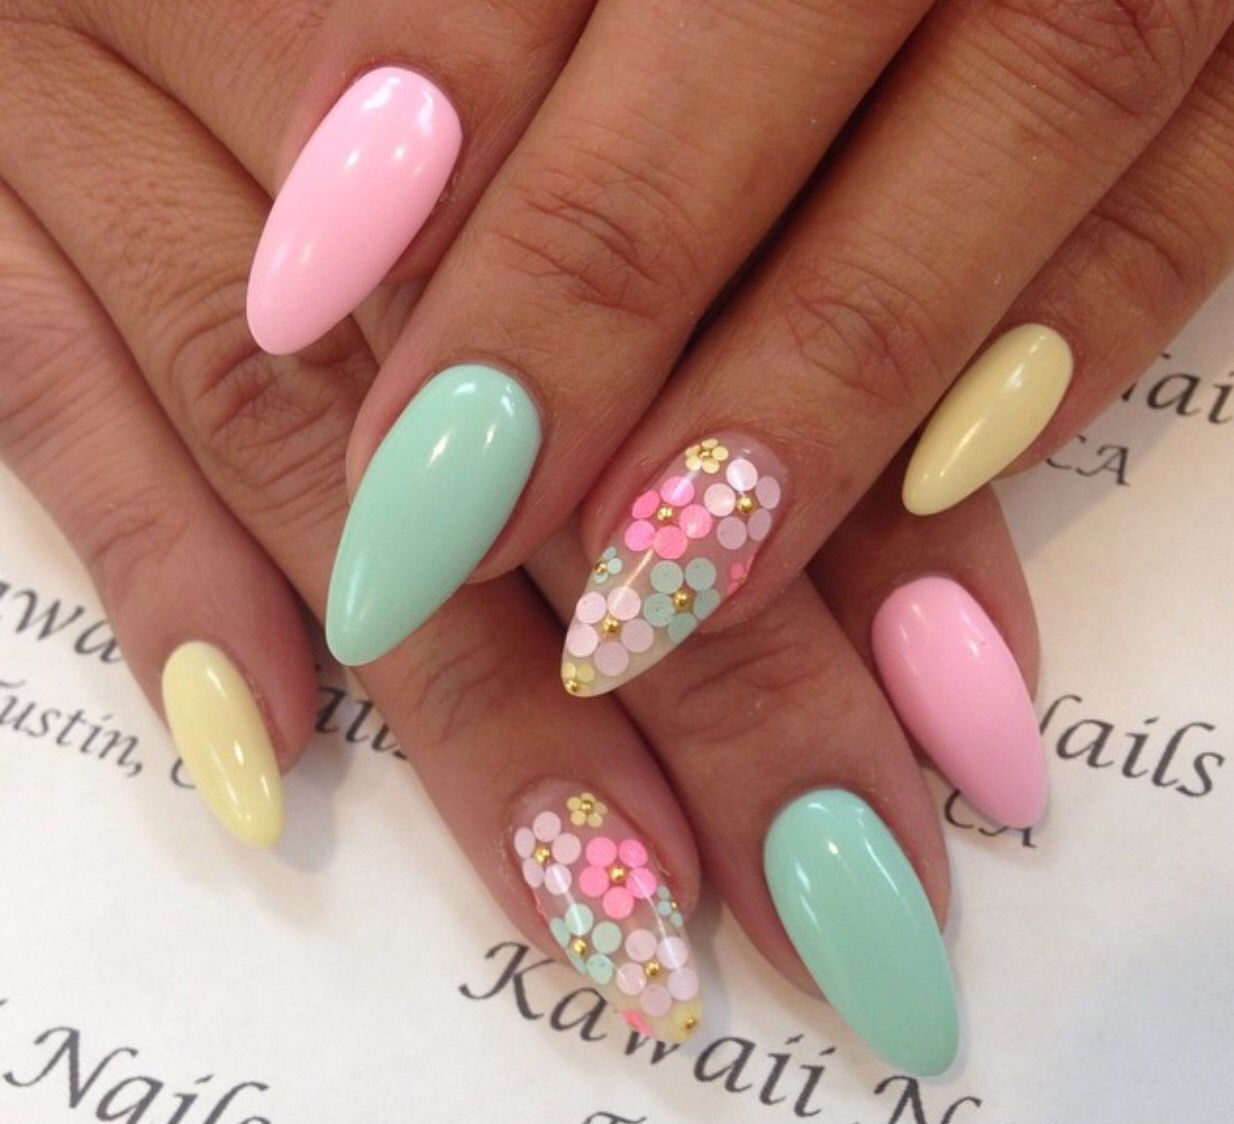 26 Spring Acrylic Nail Designs Ideas: Pin By Mayra On Get Polished